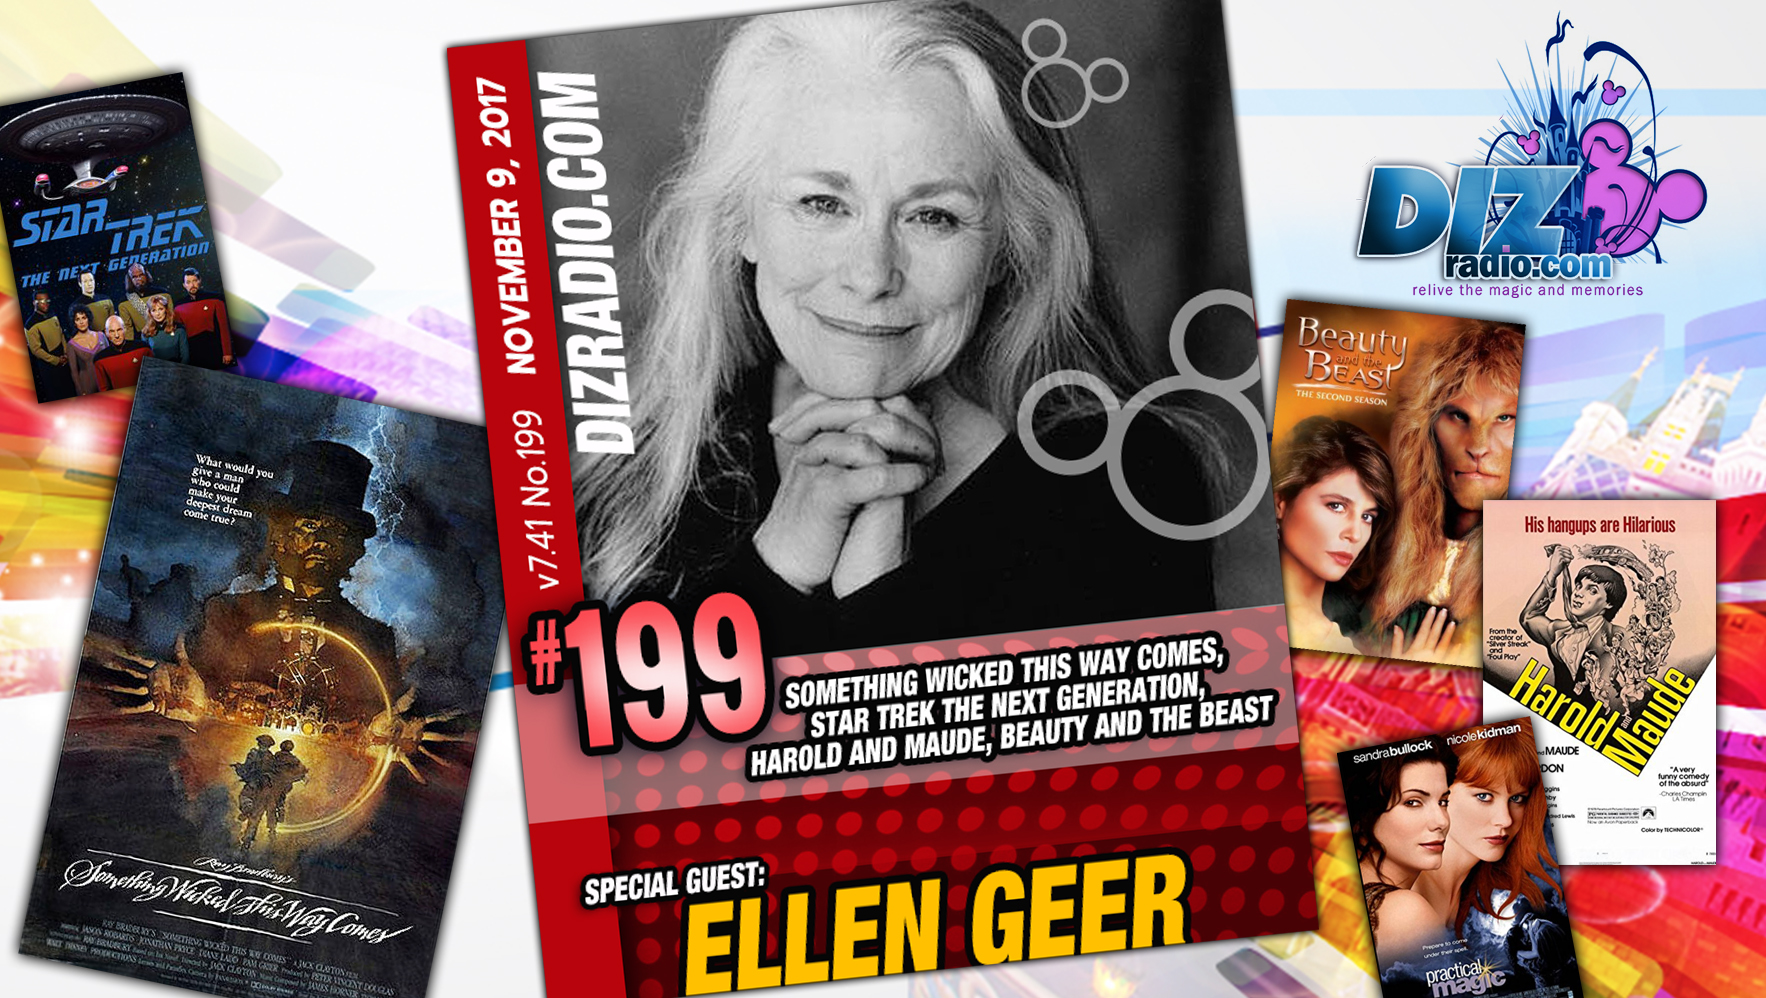 DisneyBlu's DizRadio Disney on Demand Show #199 w/ Guest ELLEN GEER (Something Wicked This Way Comes, Nancy Drew, Star Trek Next Generation, Harold and Maude, and more)